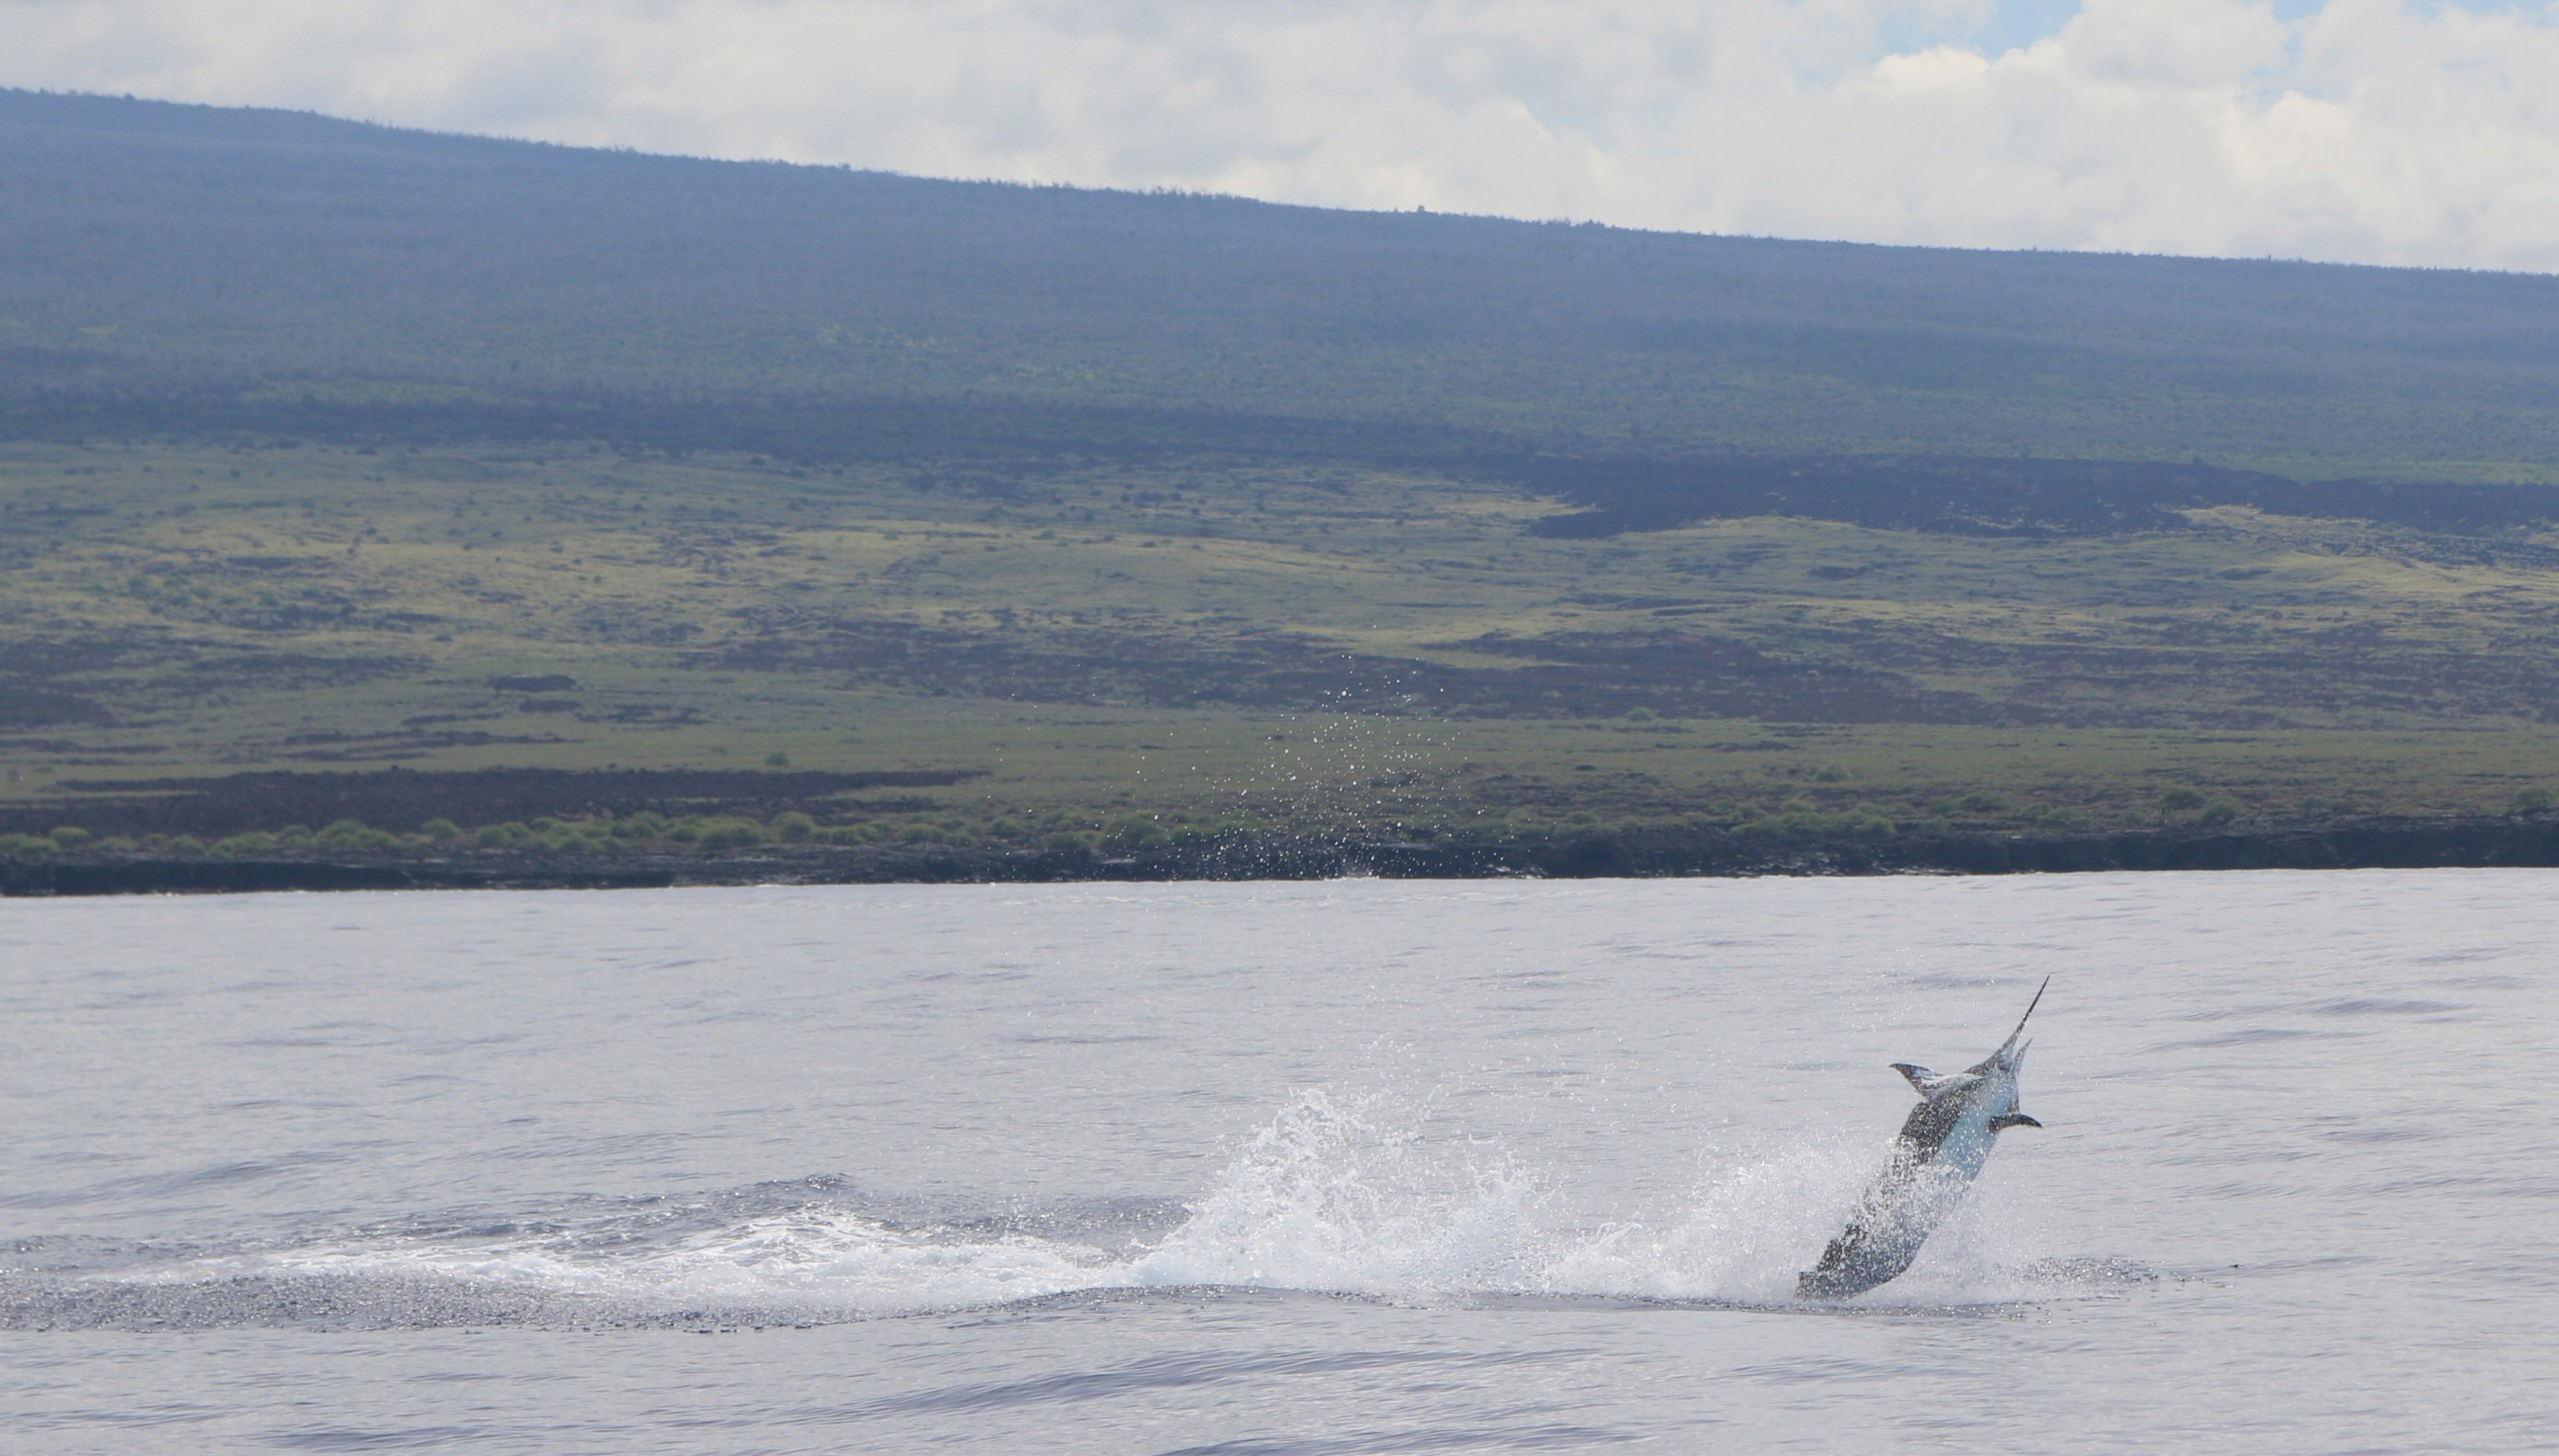 Kona, Hawaii Charter Operating and Marine Event Permits Reinstated